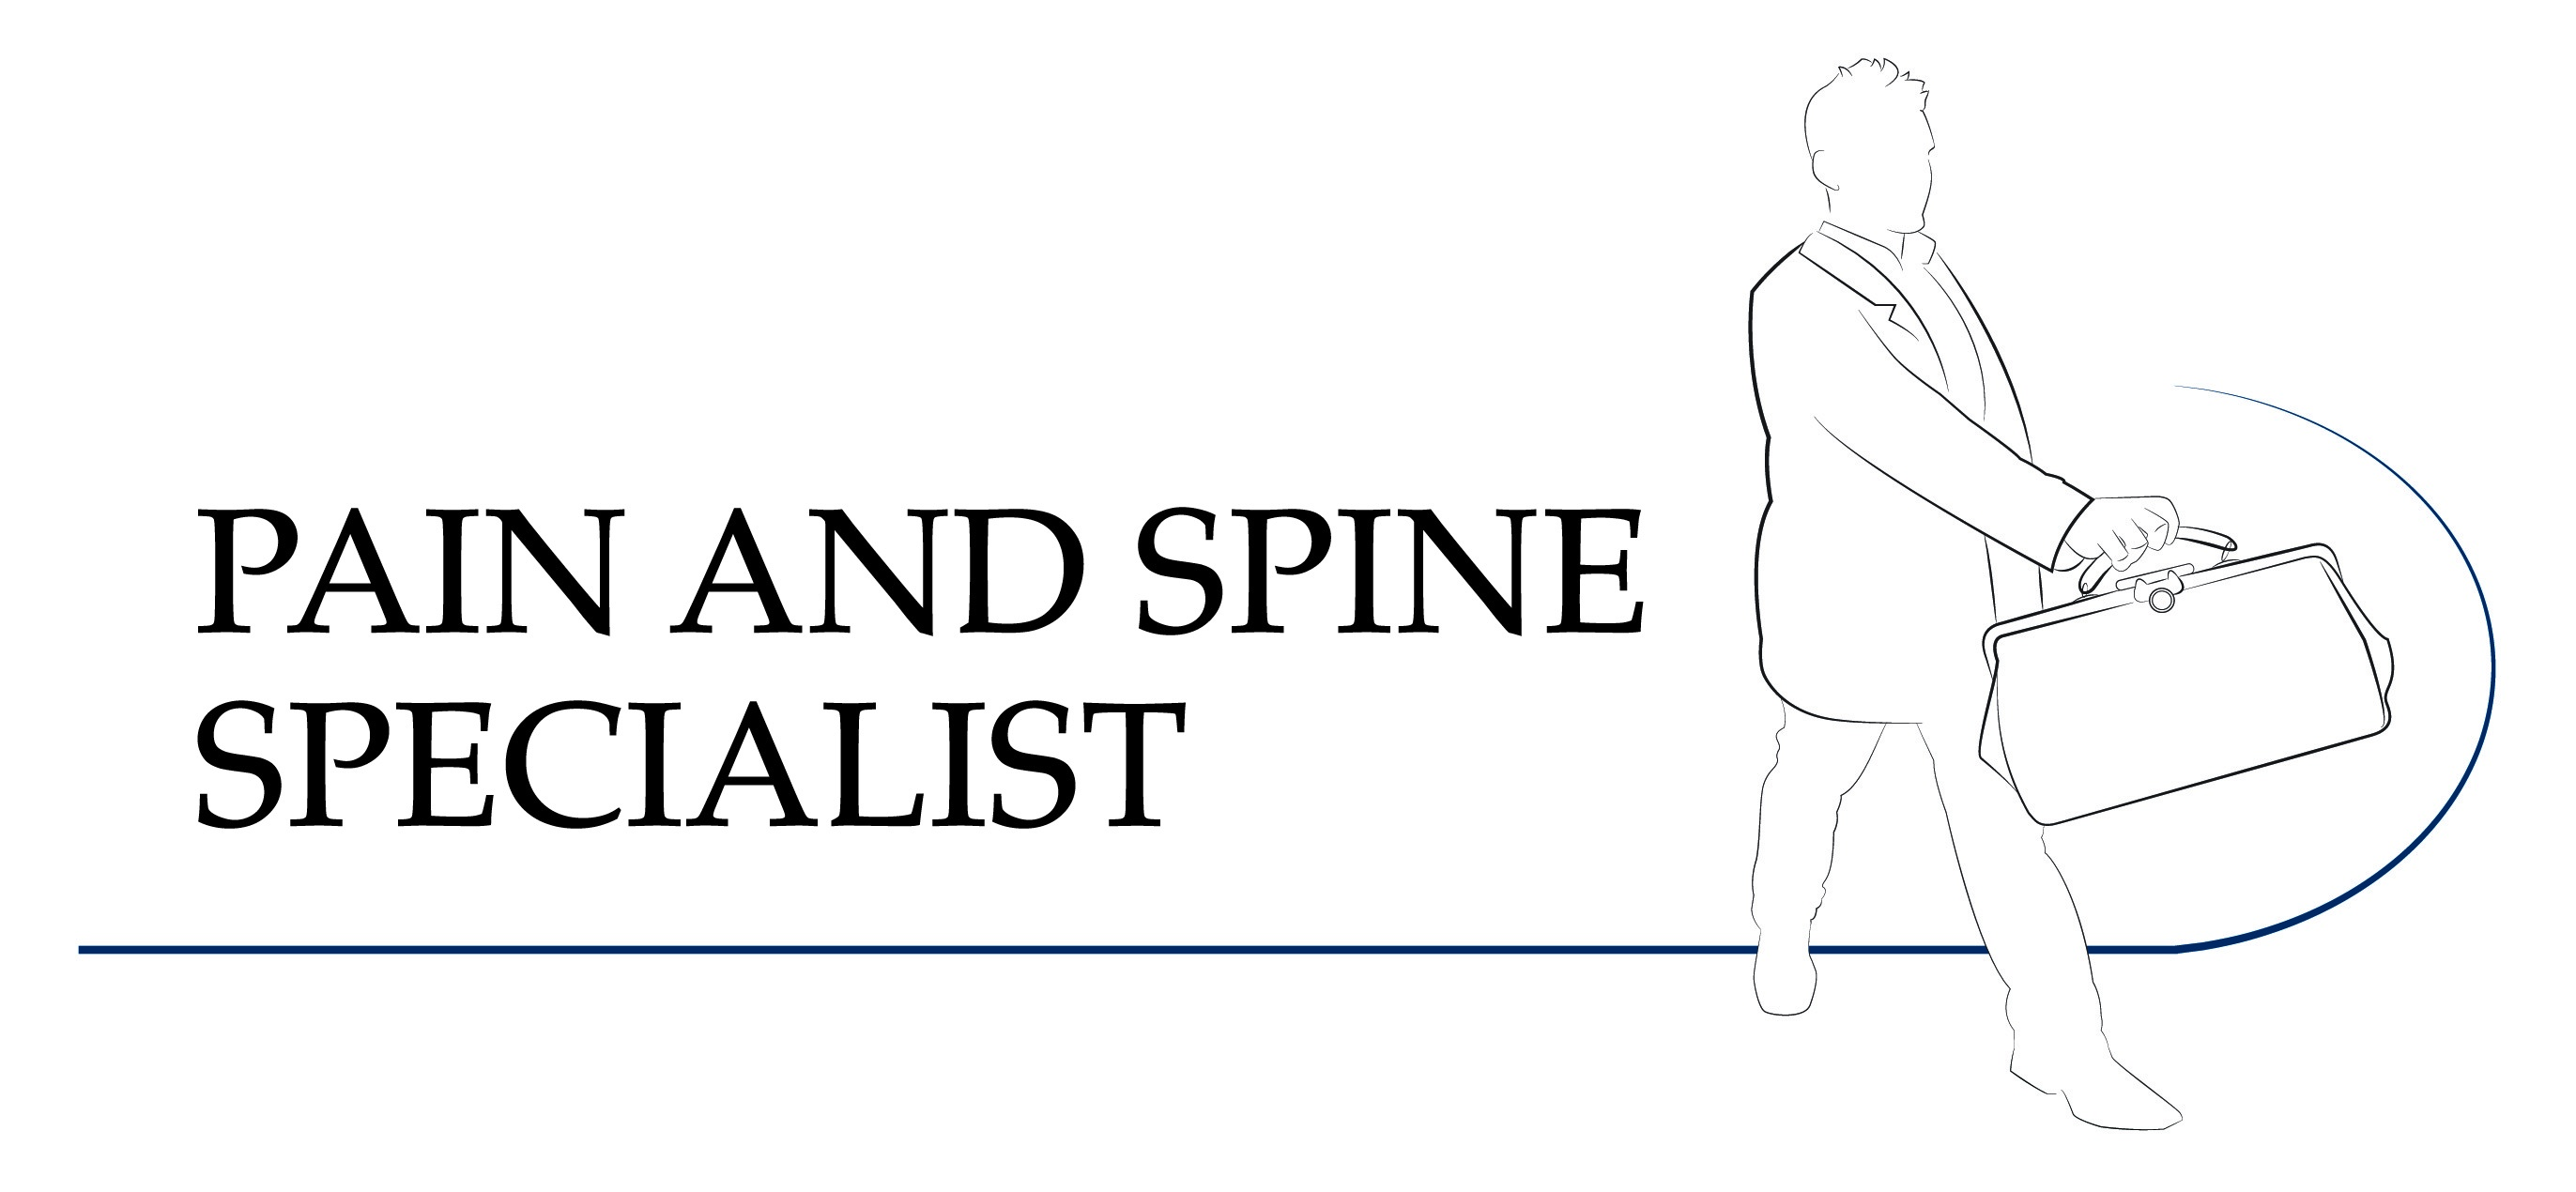 In Touch Physical Therapy Blog: Pain and Spine Specialist